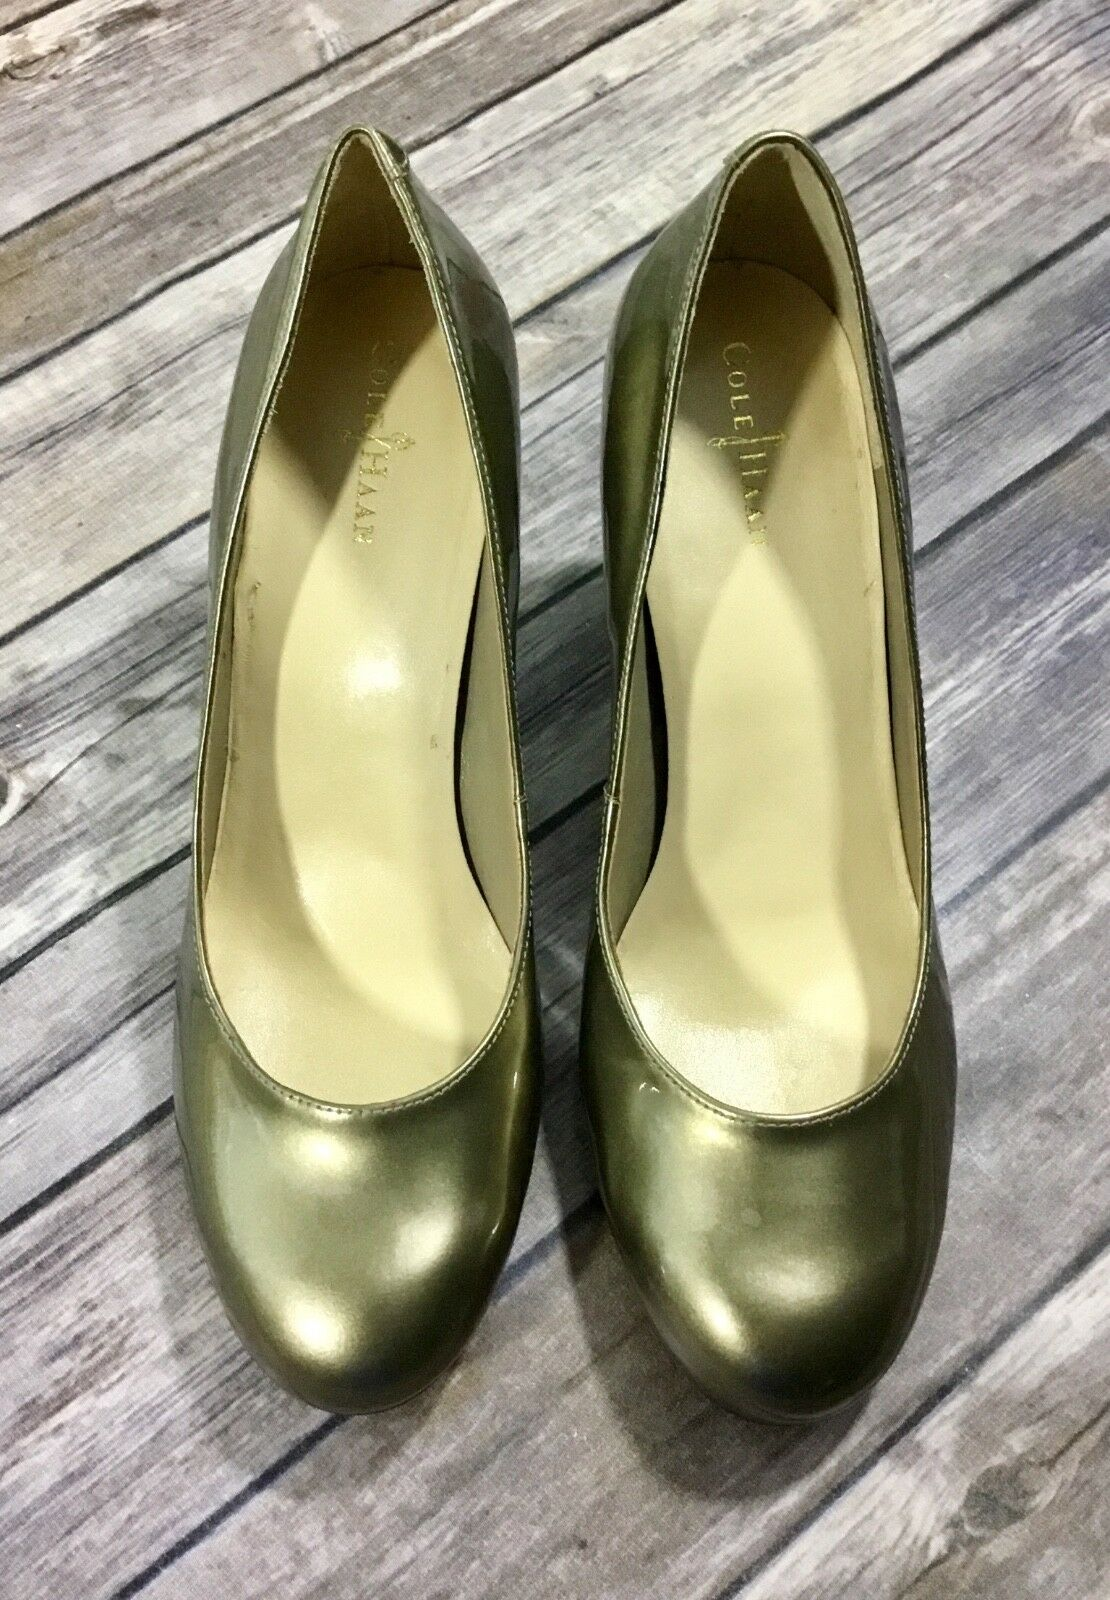 Cole Haan Womens Air Lainey High Heels 8B Pewter Patent Leather Pumps D38860 GUC